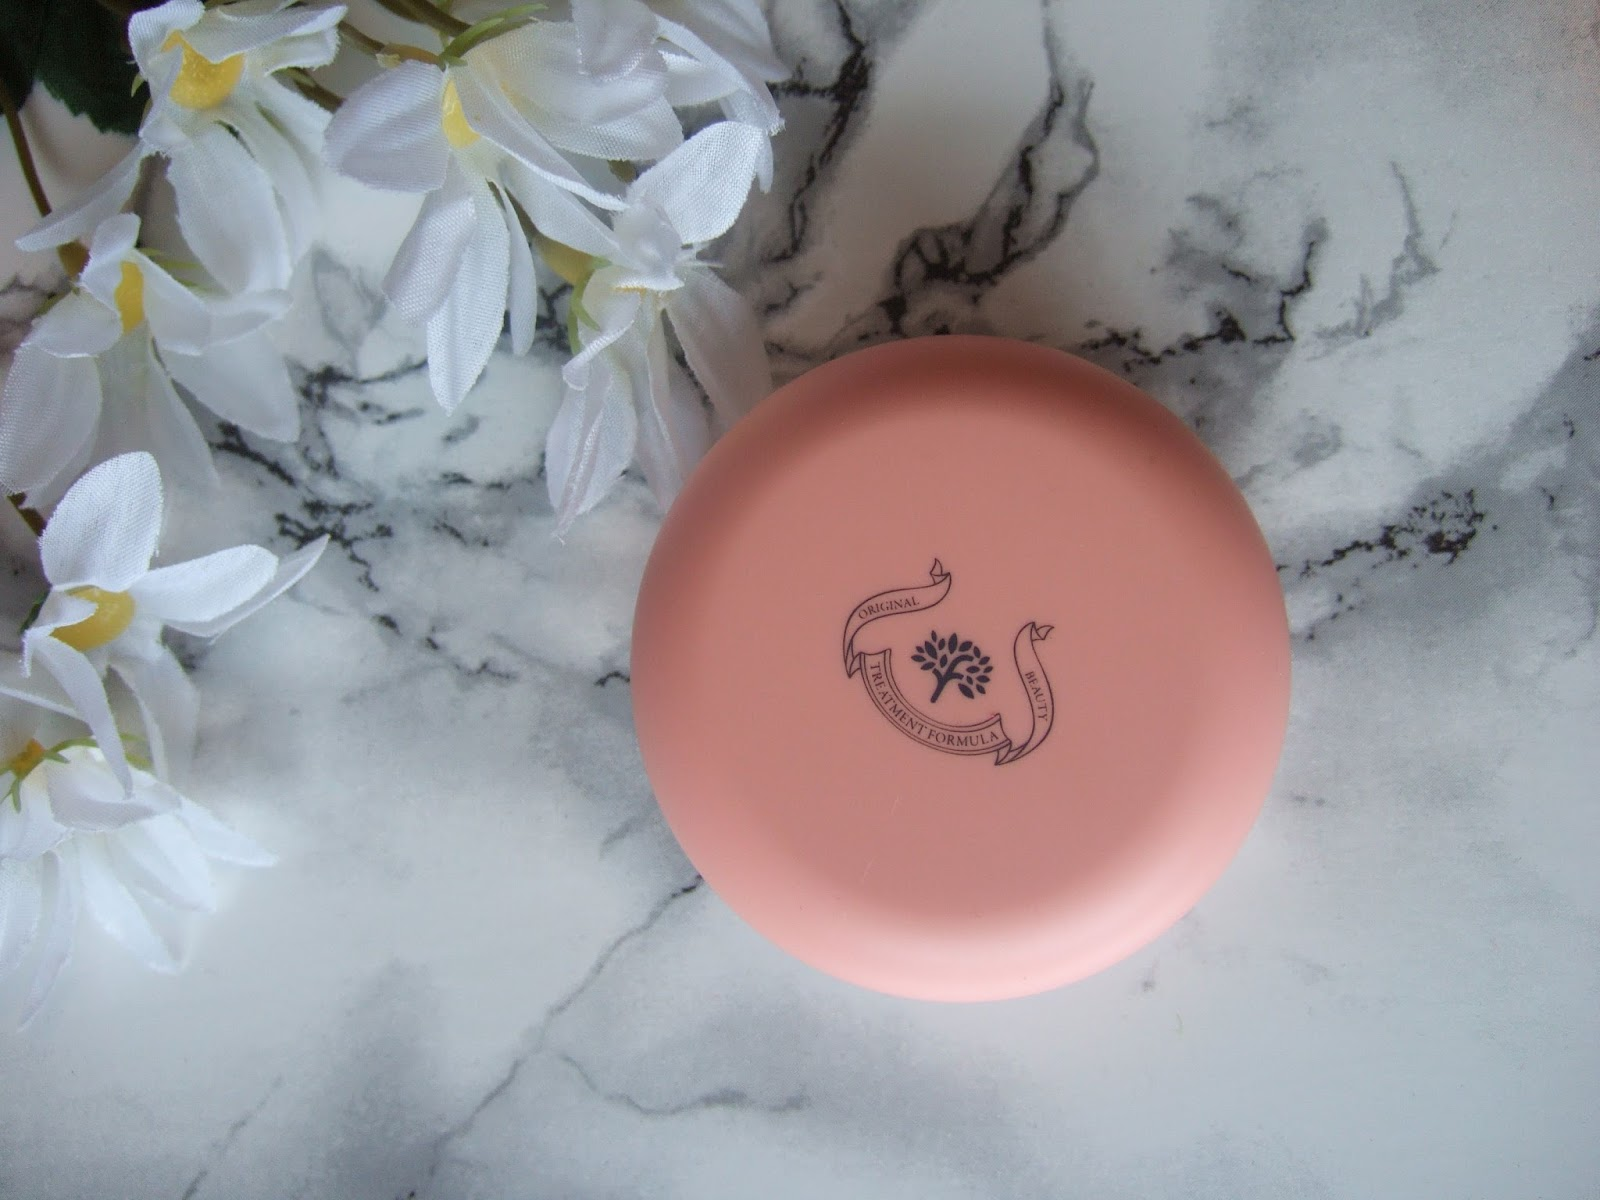 THEFACESHOP Hydro Cushion Blush 'Coral 02' – Review and Swatches